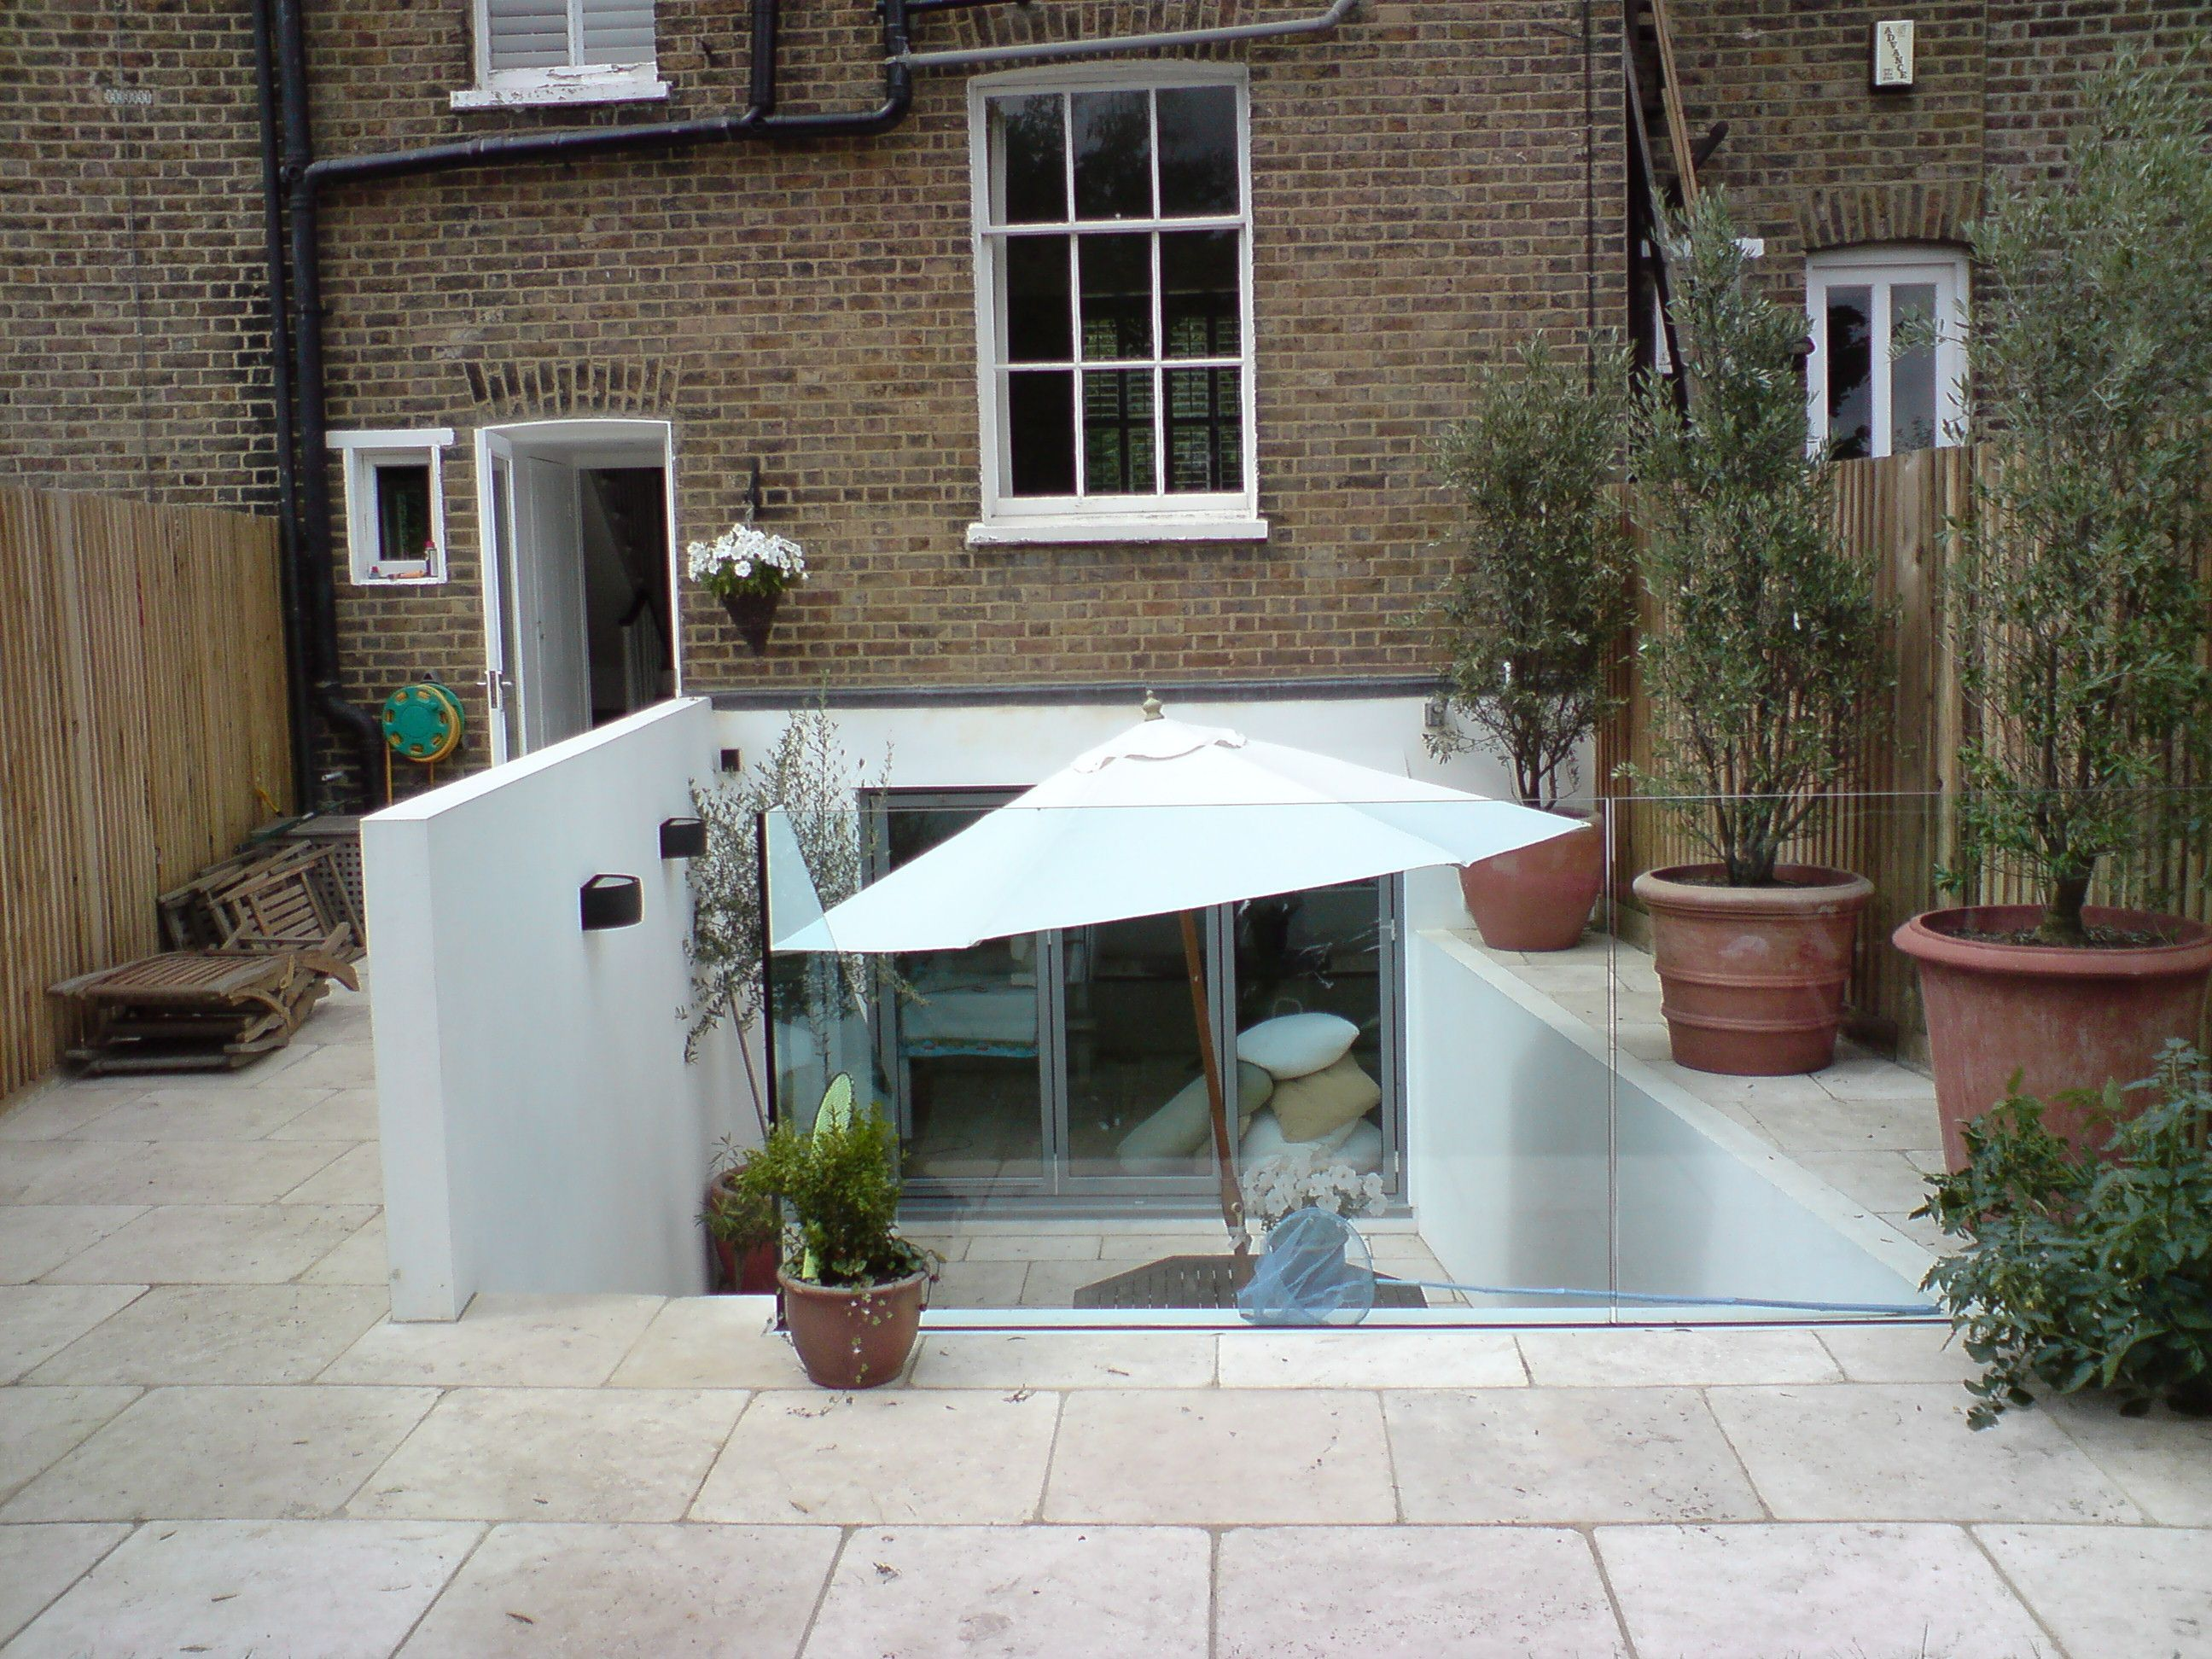 Cellar conversions and basement renovations in London and